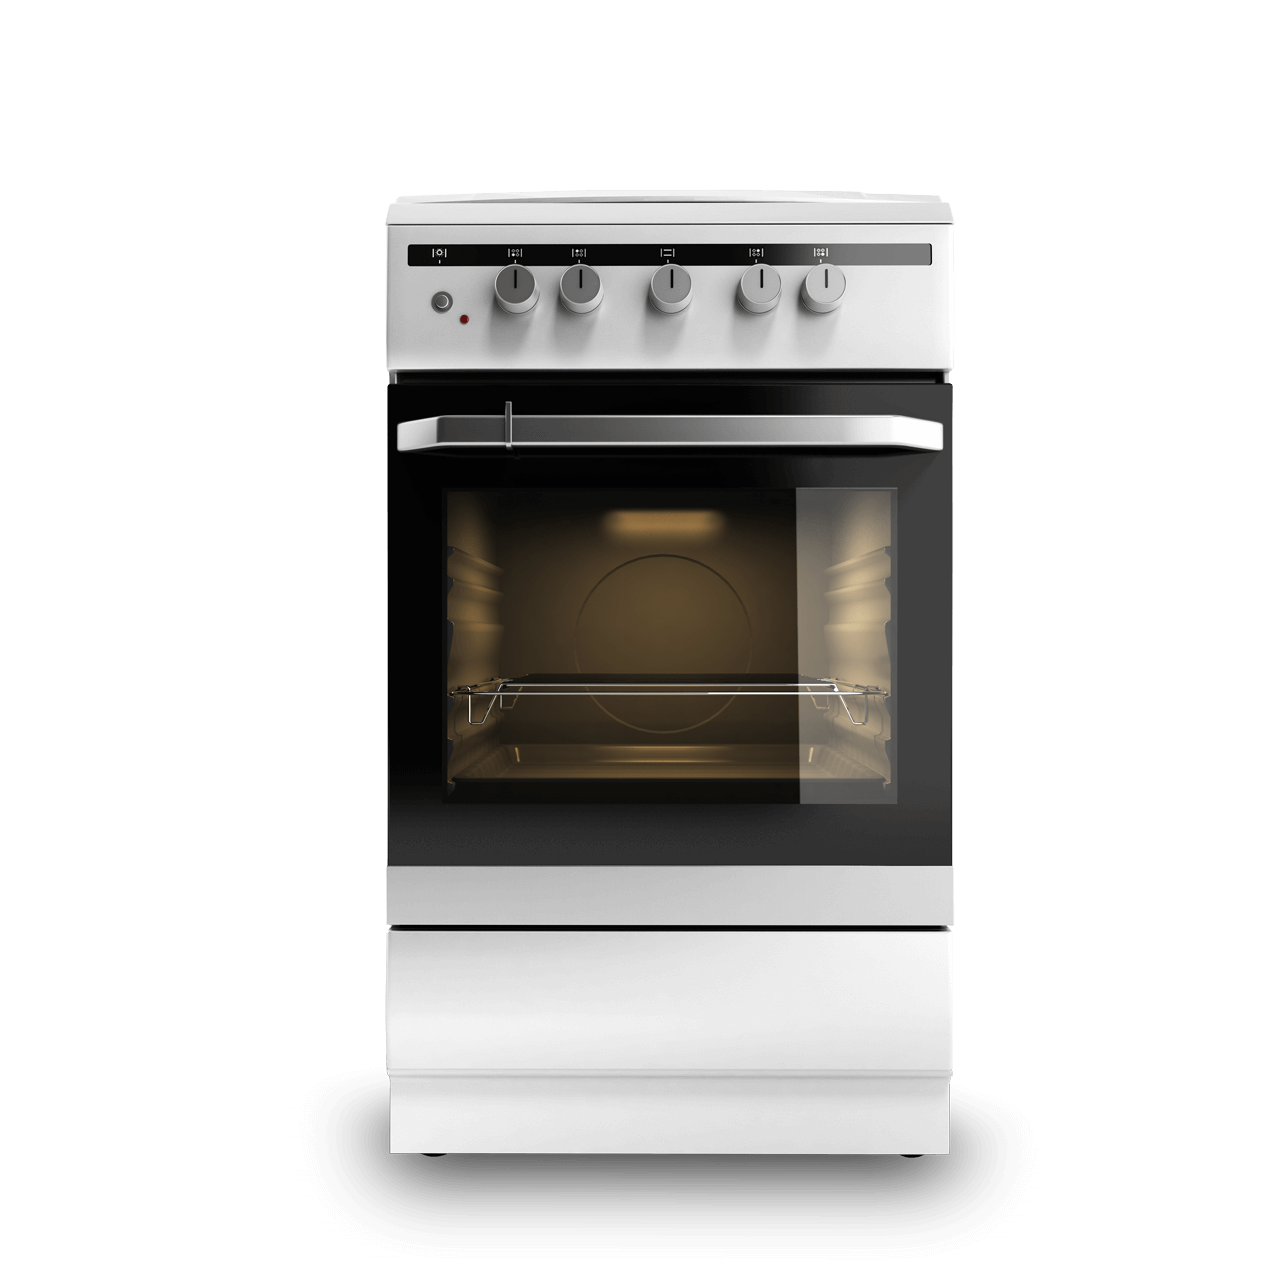 Stainless steel GE oven